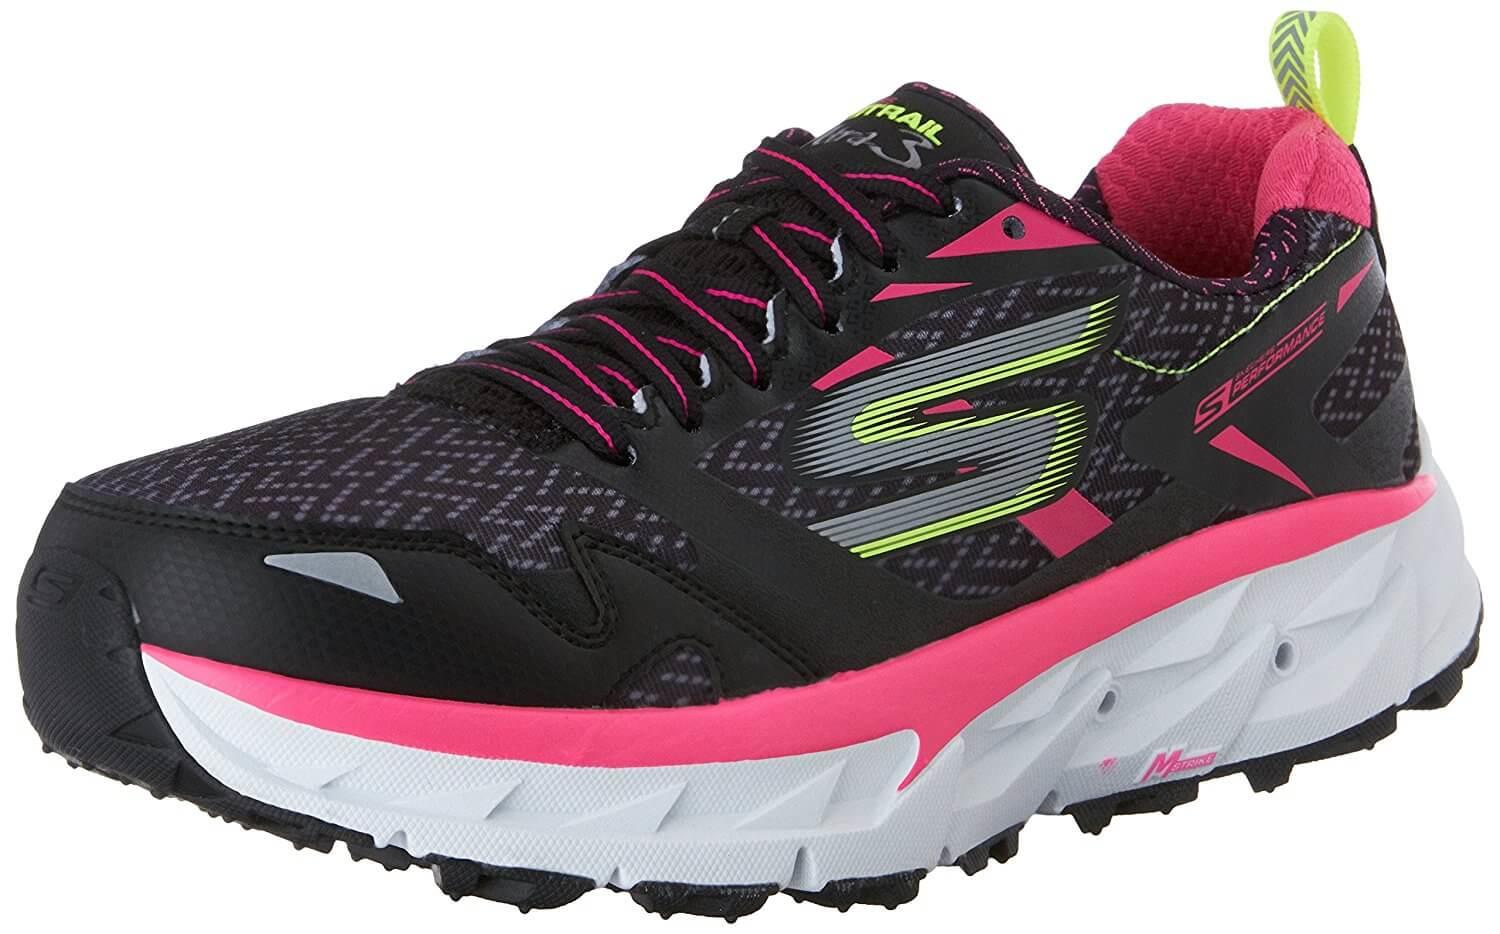 The Skechers GOTrail Ultra 3 shown from the front side